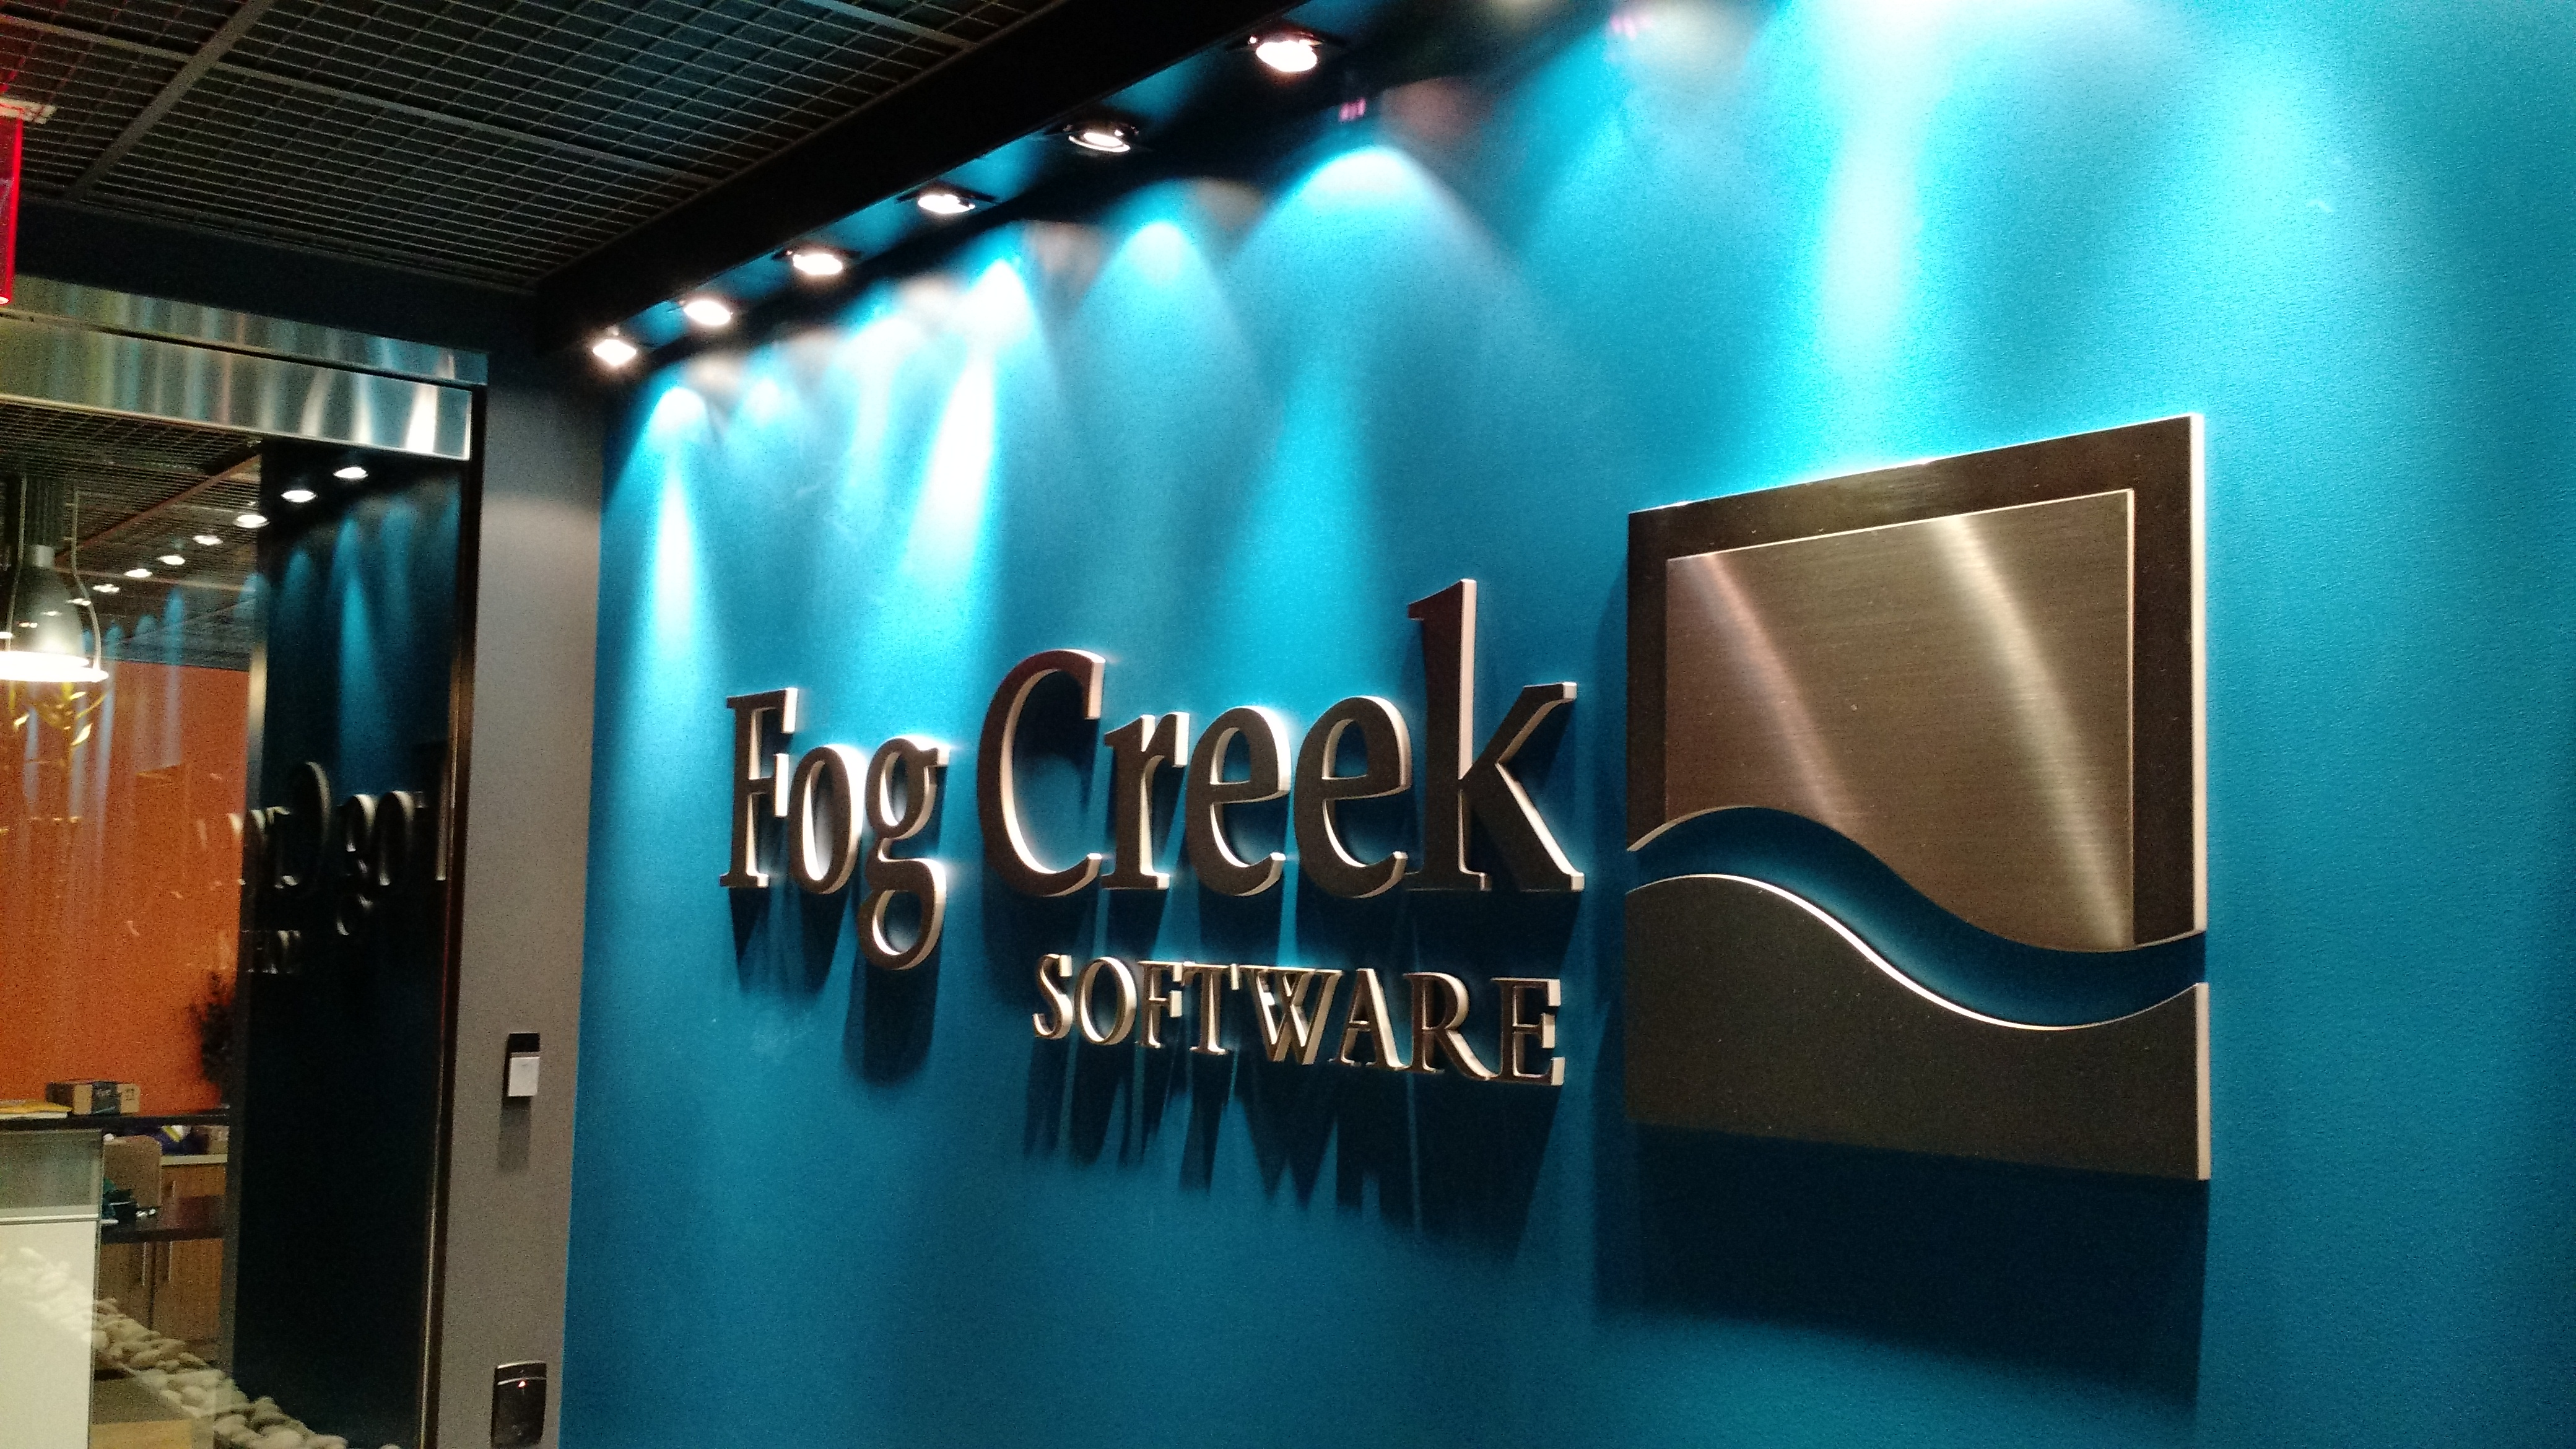 Fogbugz Free fog creek launches chatterbug, a free issue-tracker bot that